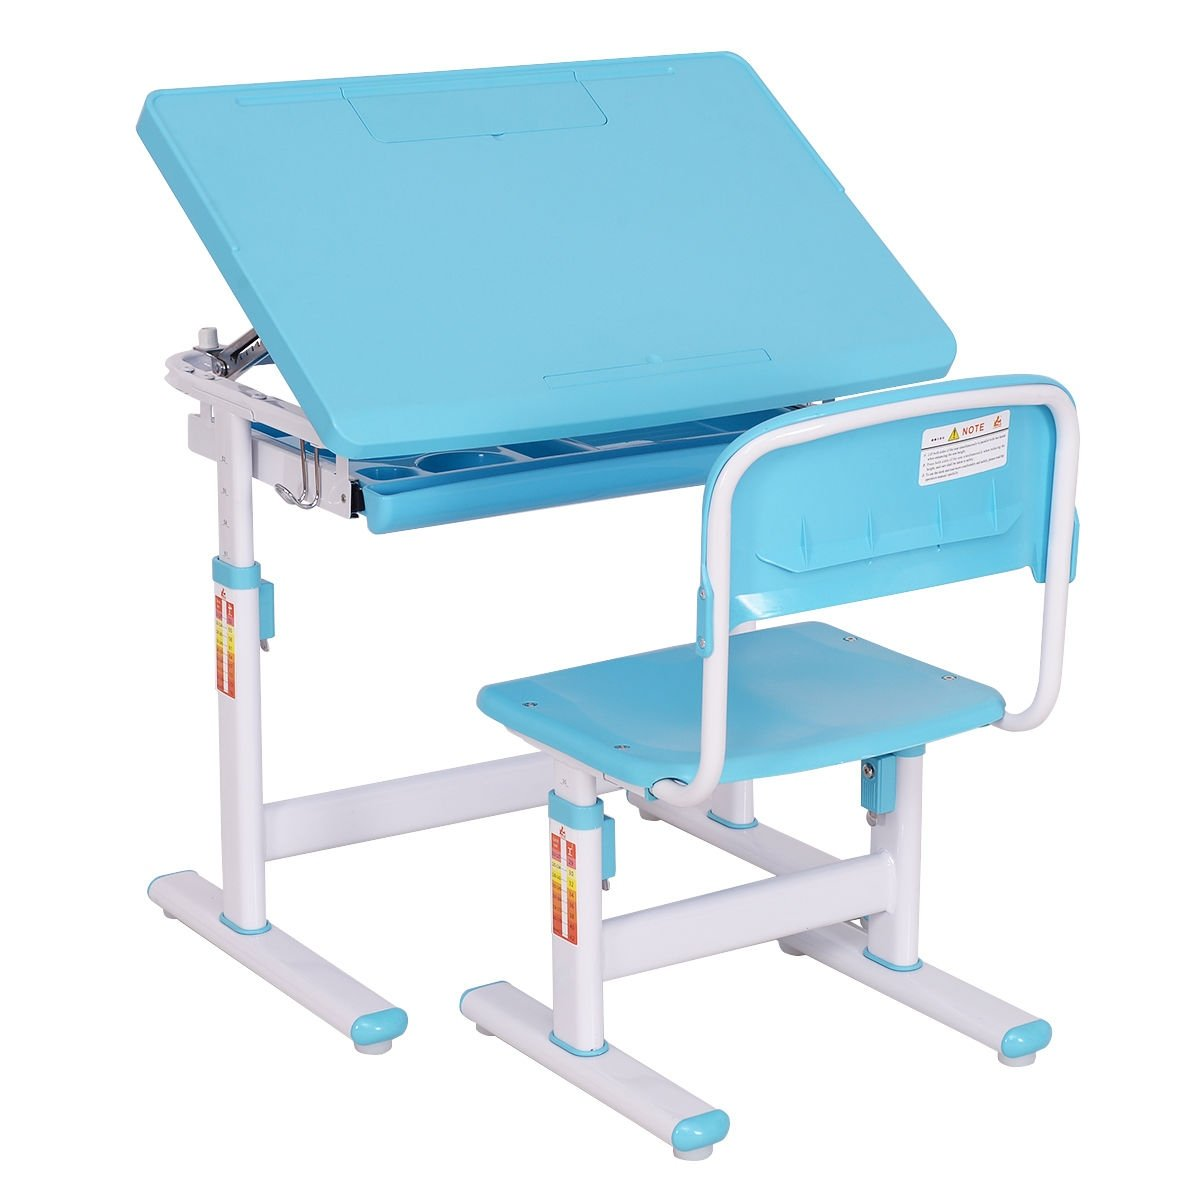 Costway Sturdy and Durable Adjustable Desk & Chair Height Student Study Kids Activity Table and Stool Work Station Set in Blue with Sliding Drawer